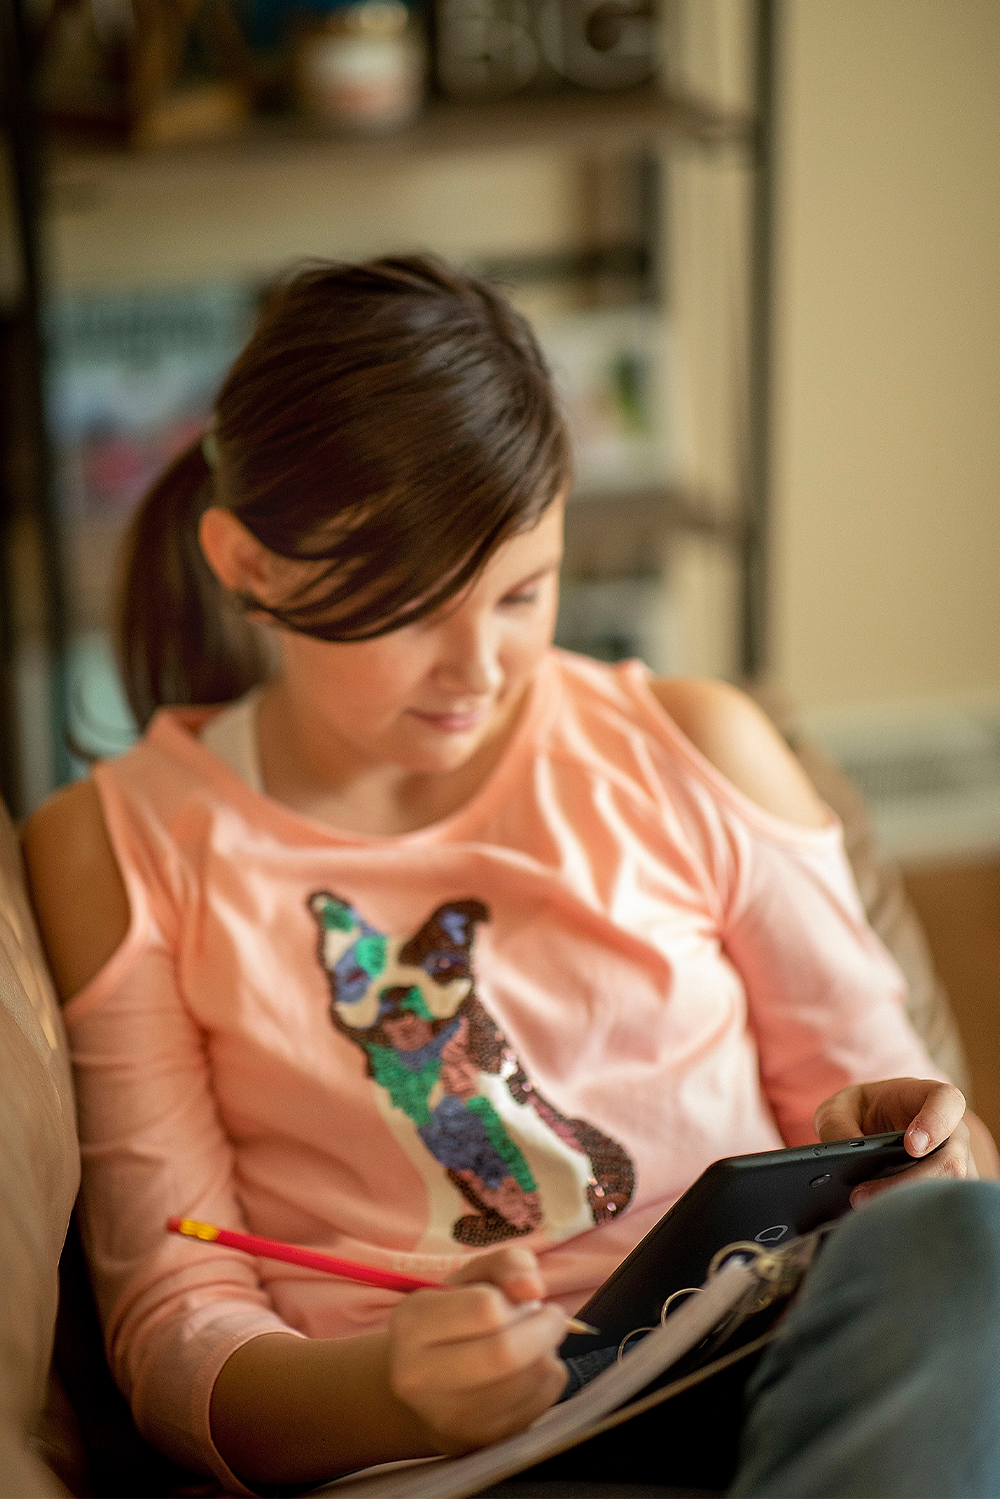 Using a tablet, Hannah Davis does her history homework from the couch.